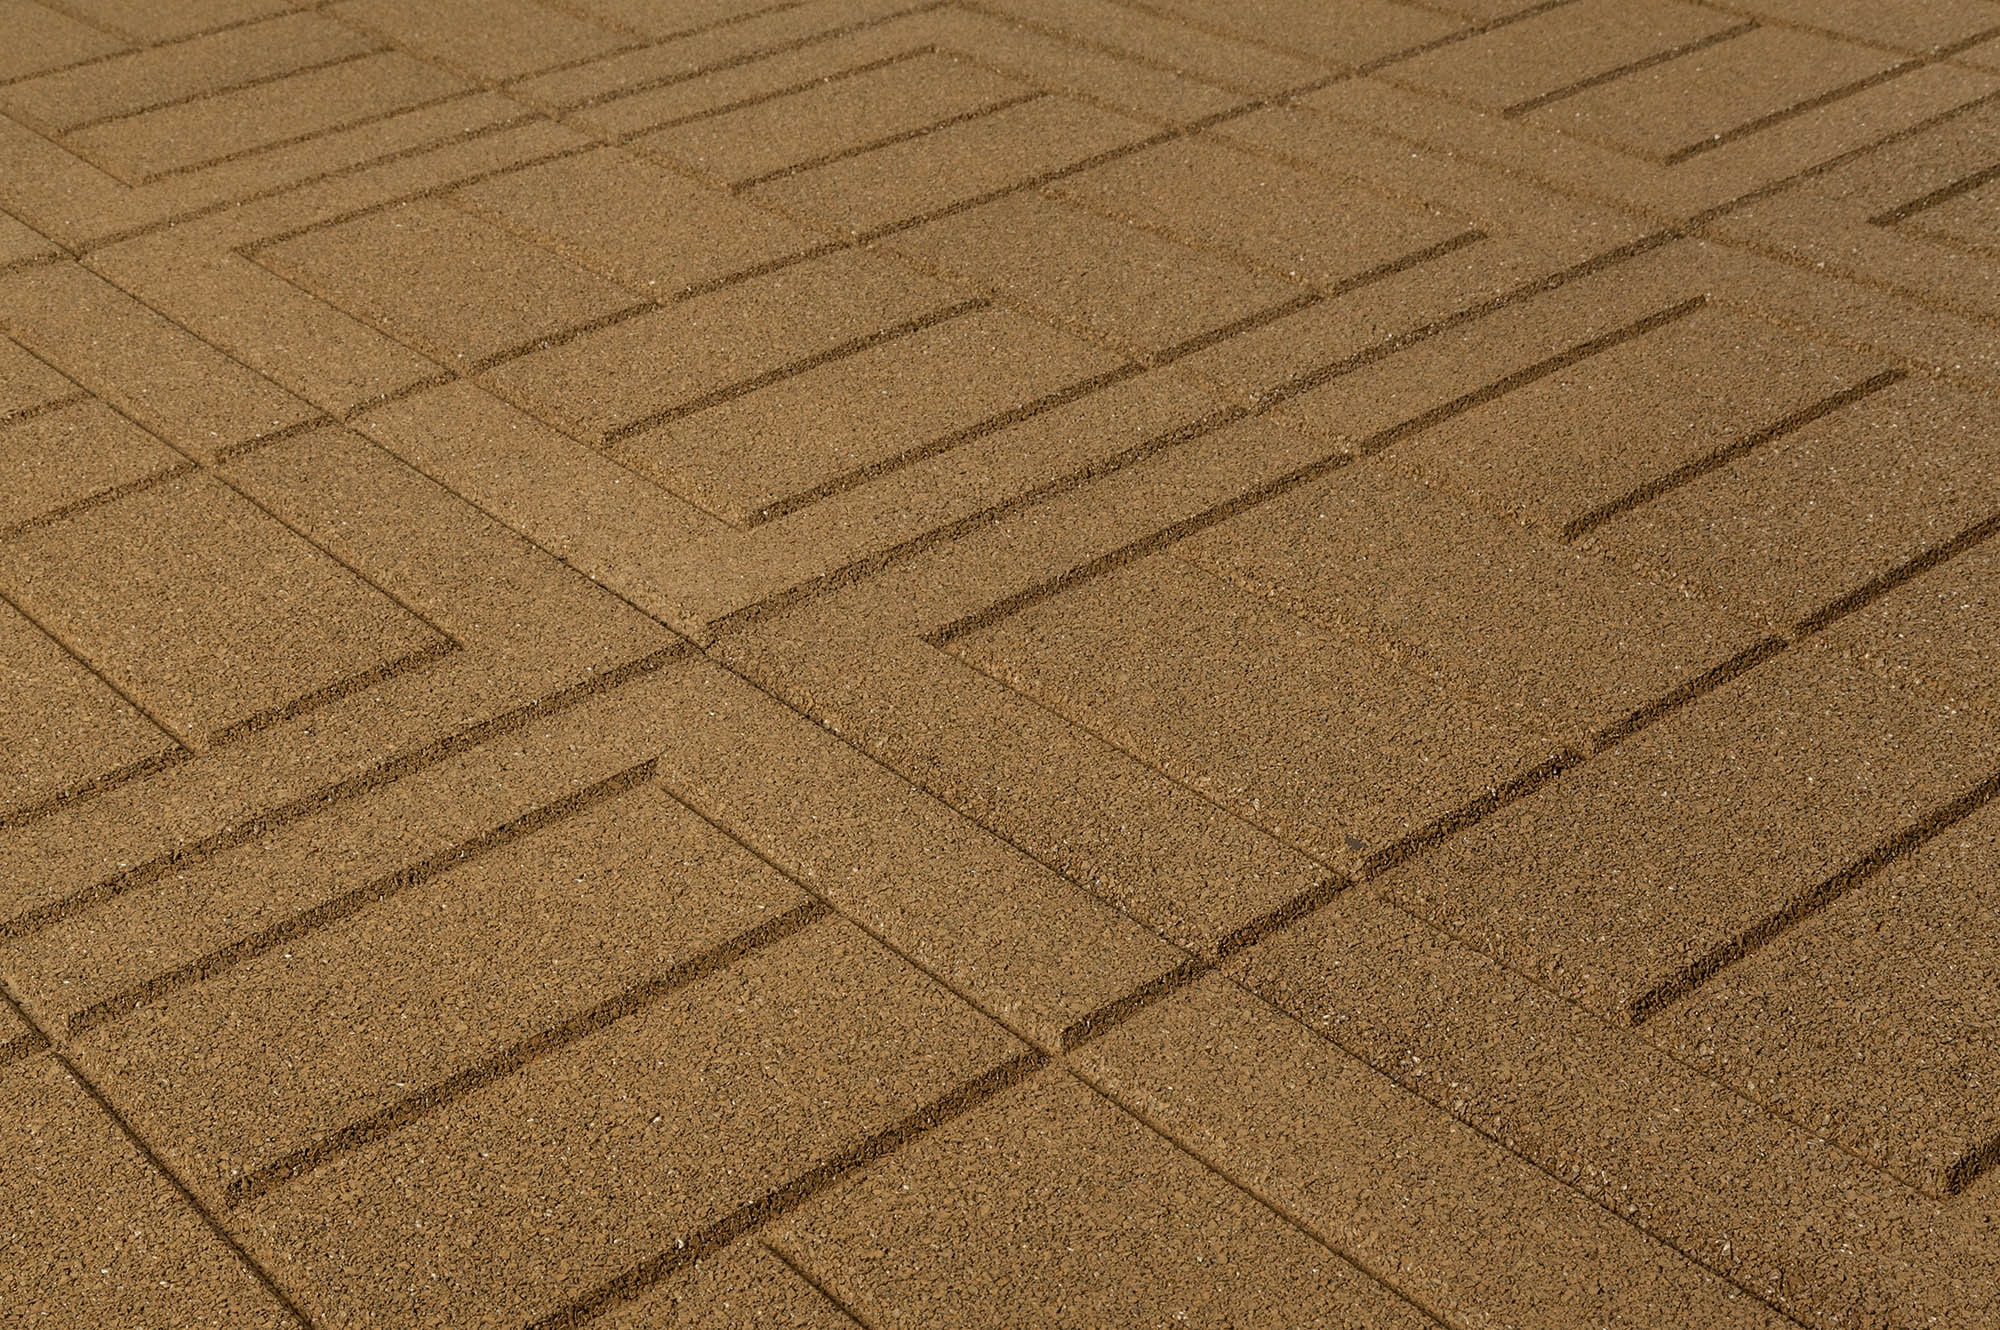 "Interlocking Brick Pavers Brava Outdoor Interlocking Rubber Pavers 24""x24""x34""  Rubber"